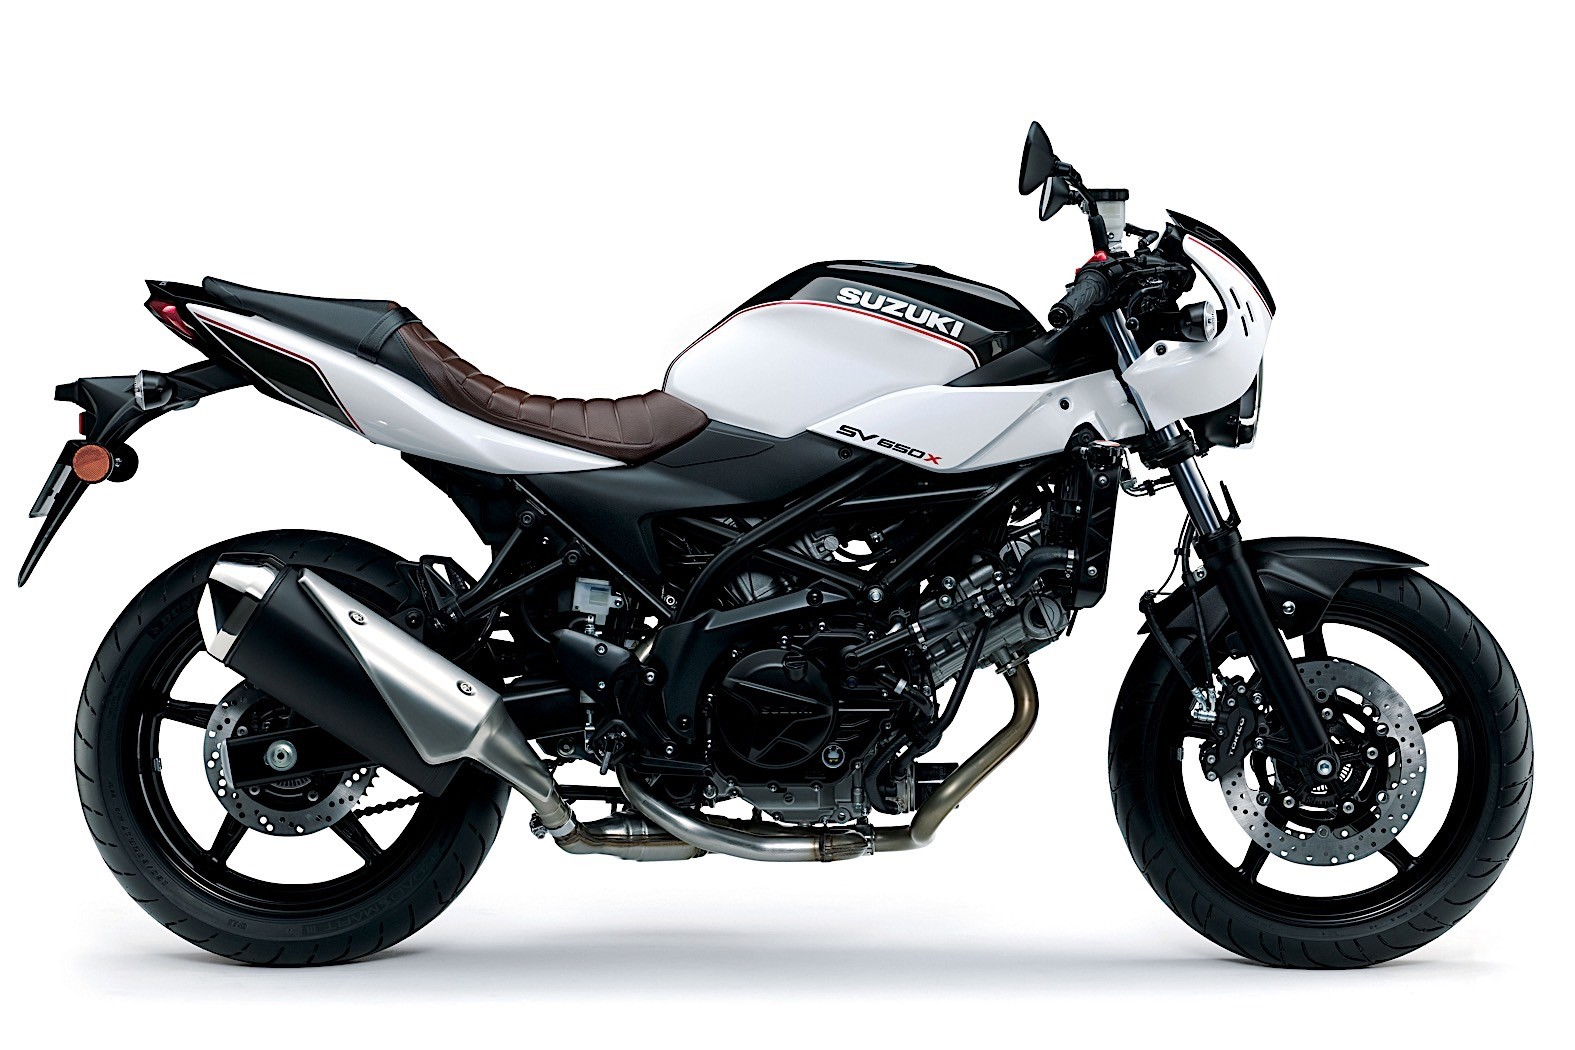 2019-suzuki-motorcycles-shine-in-new-colors-at-the-motorcycle-live-39